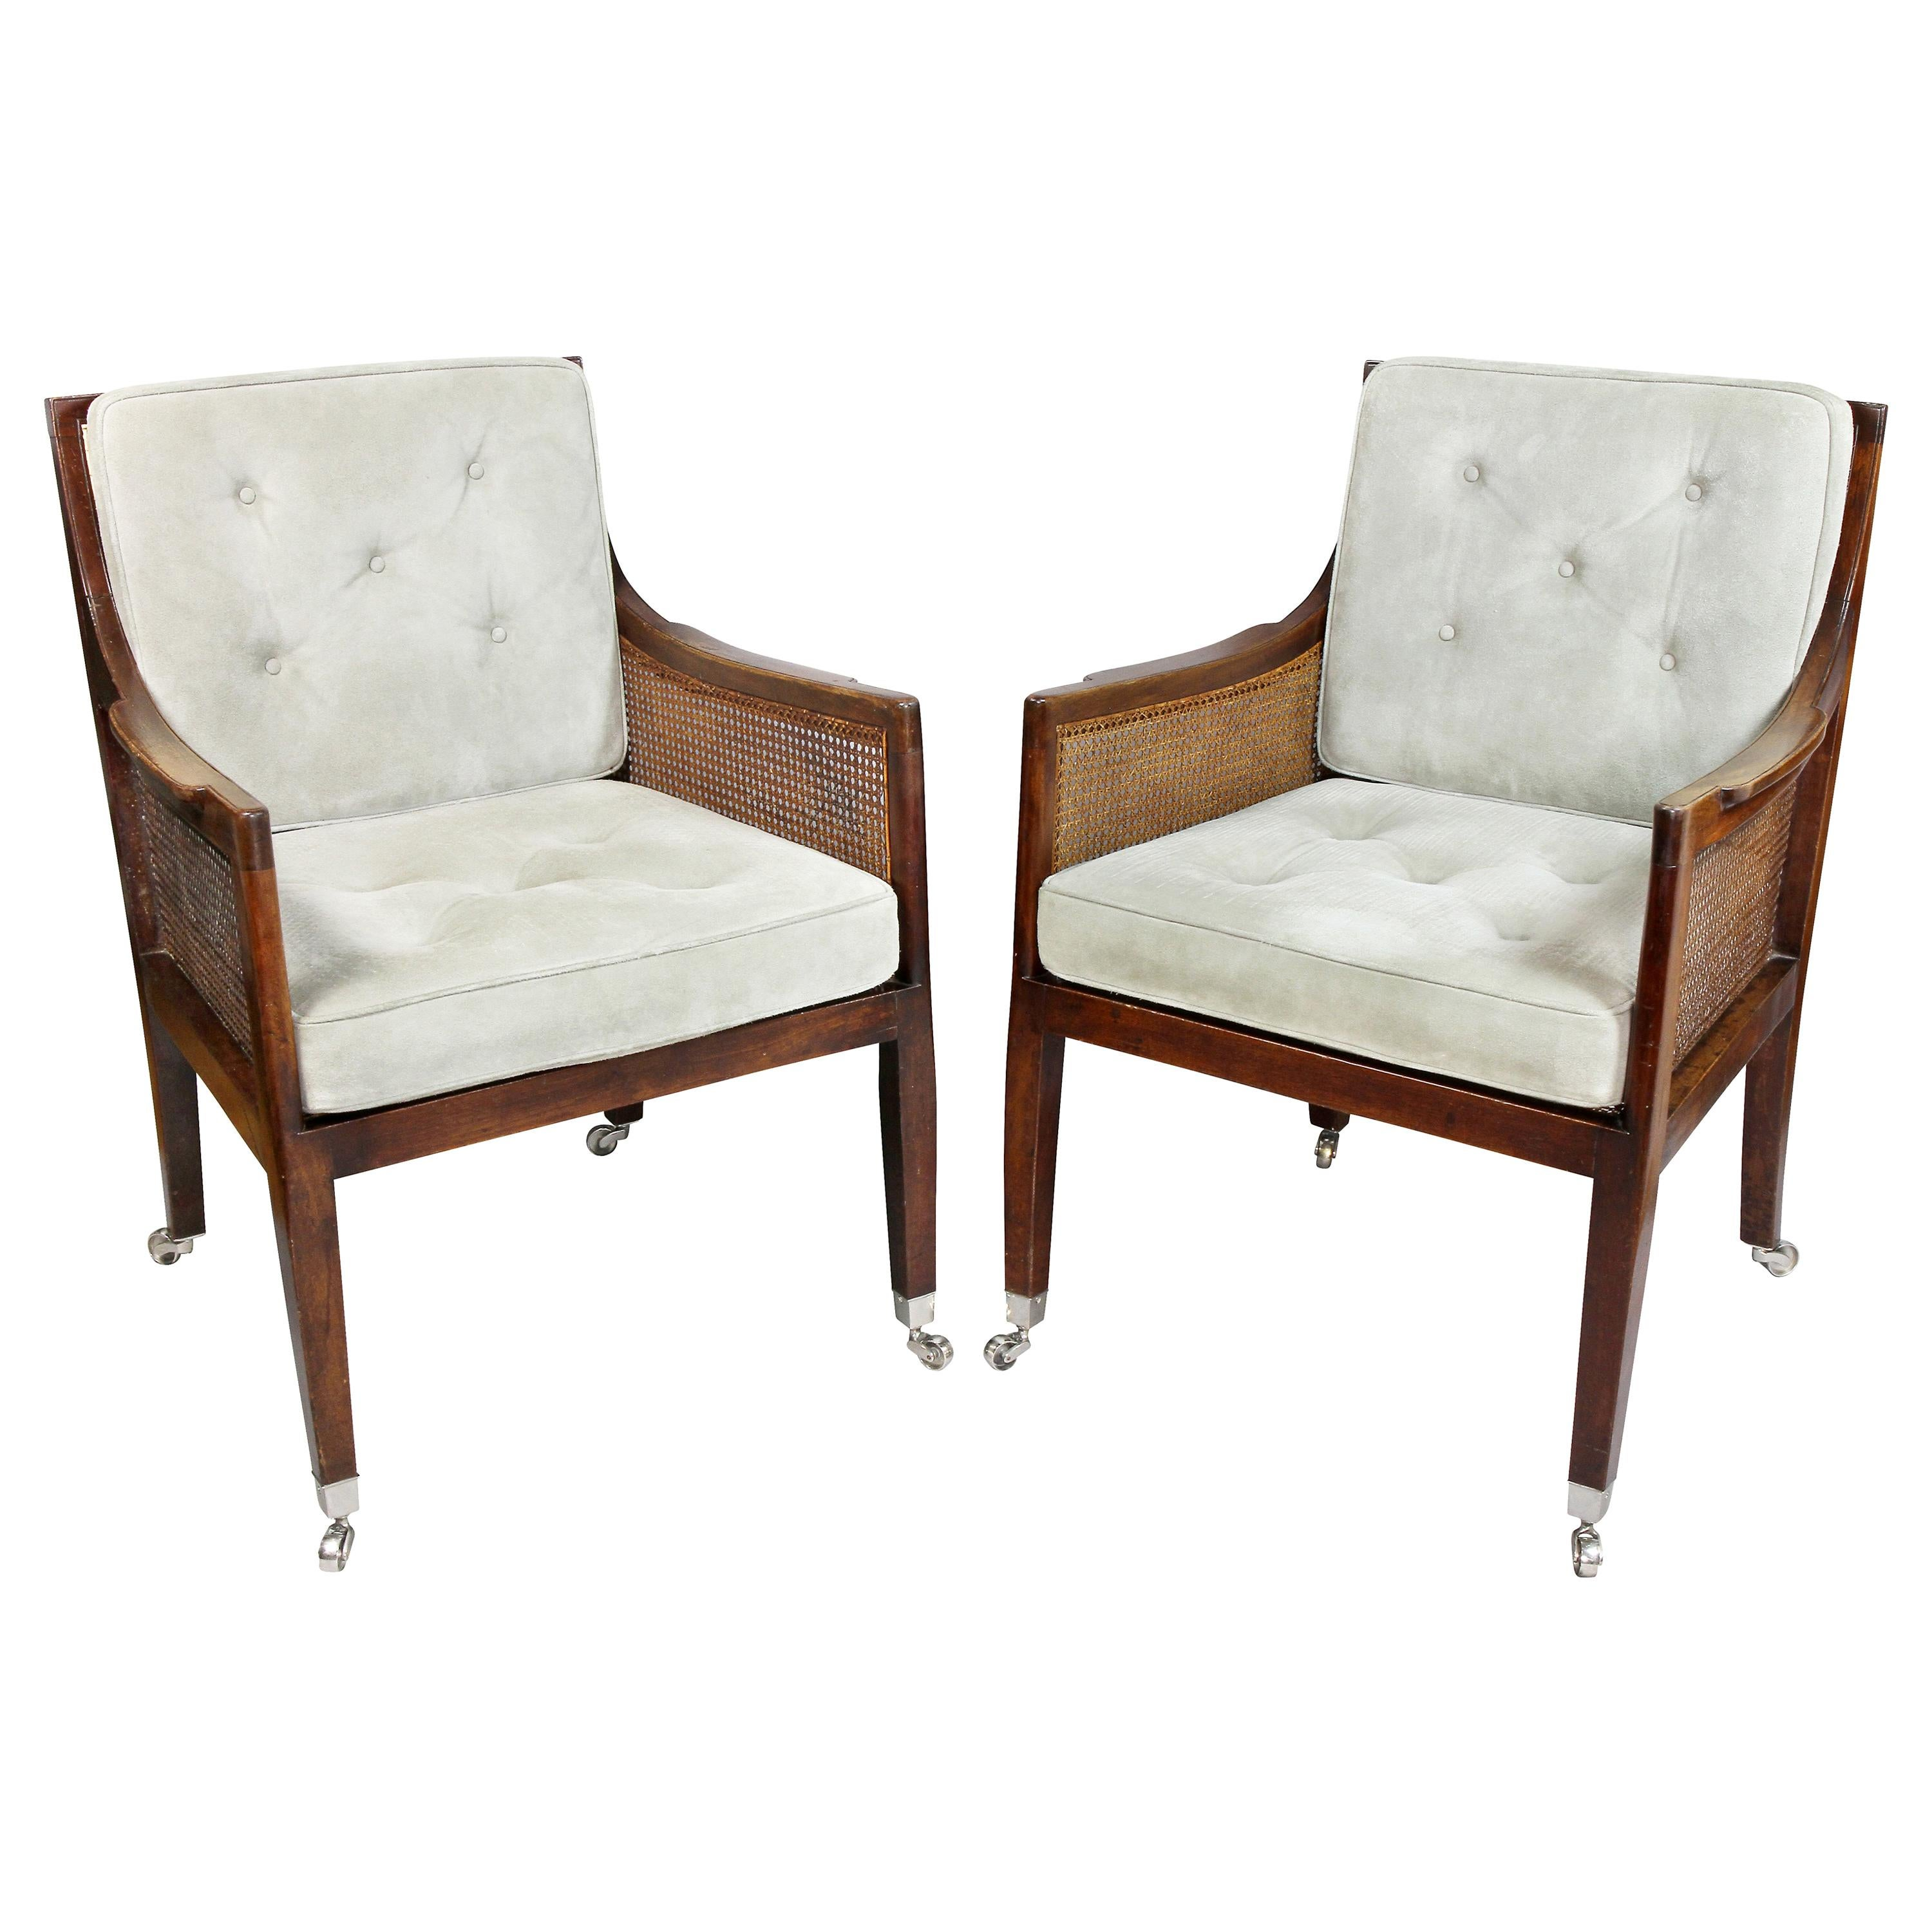 Pair of Regency Mahogany and Caned Armchairs